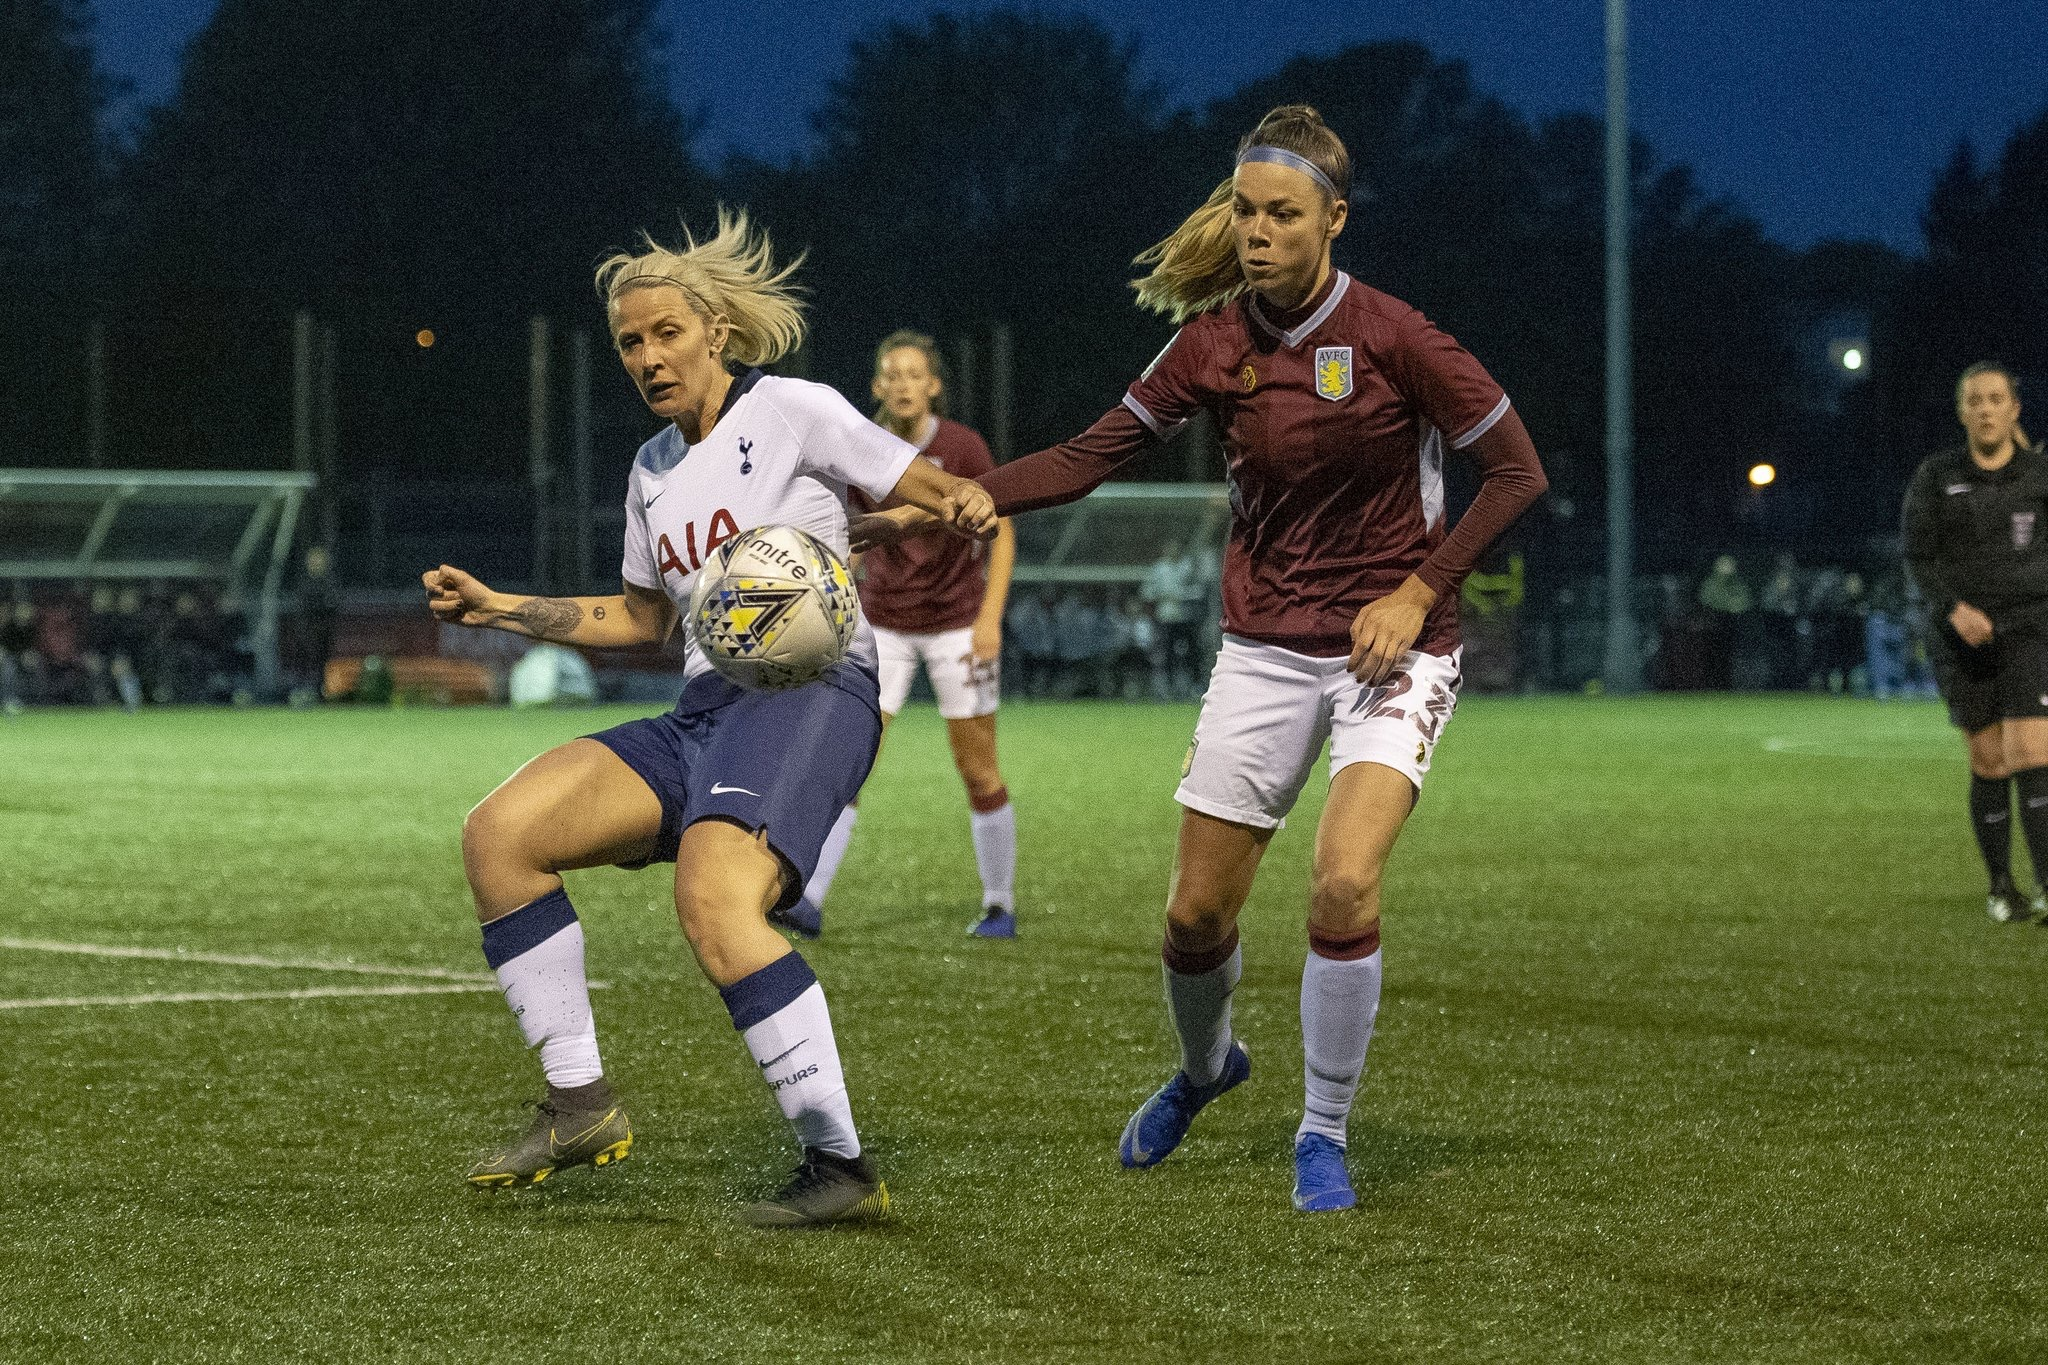 Nadine Hanssen in astion for Villa. Photo from @AVLFCOfficial